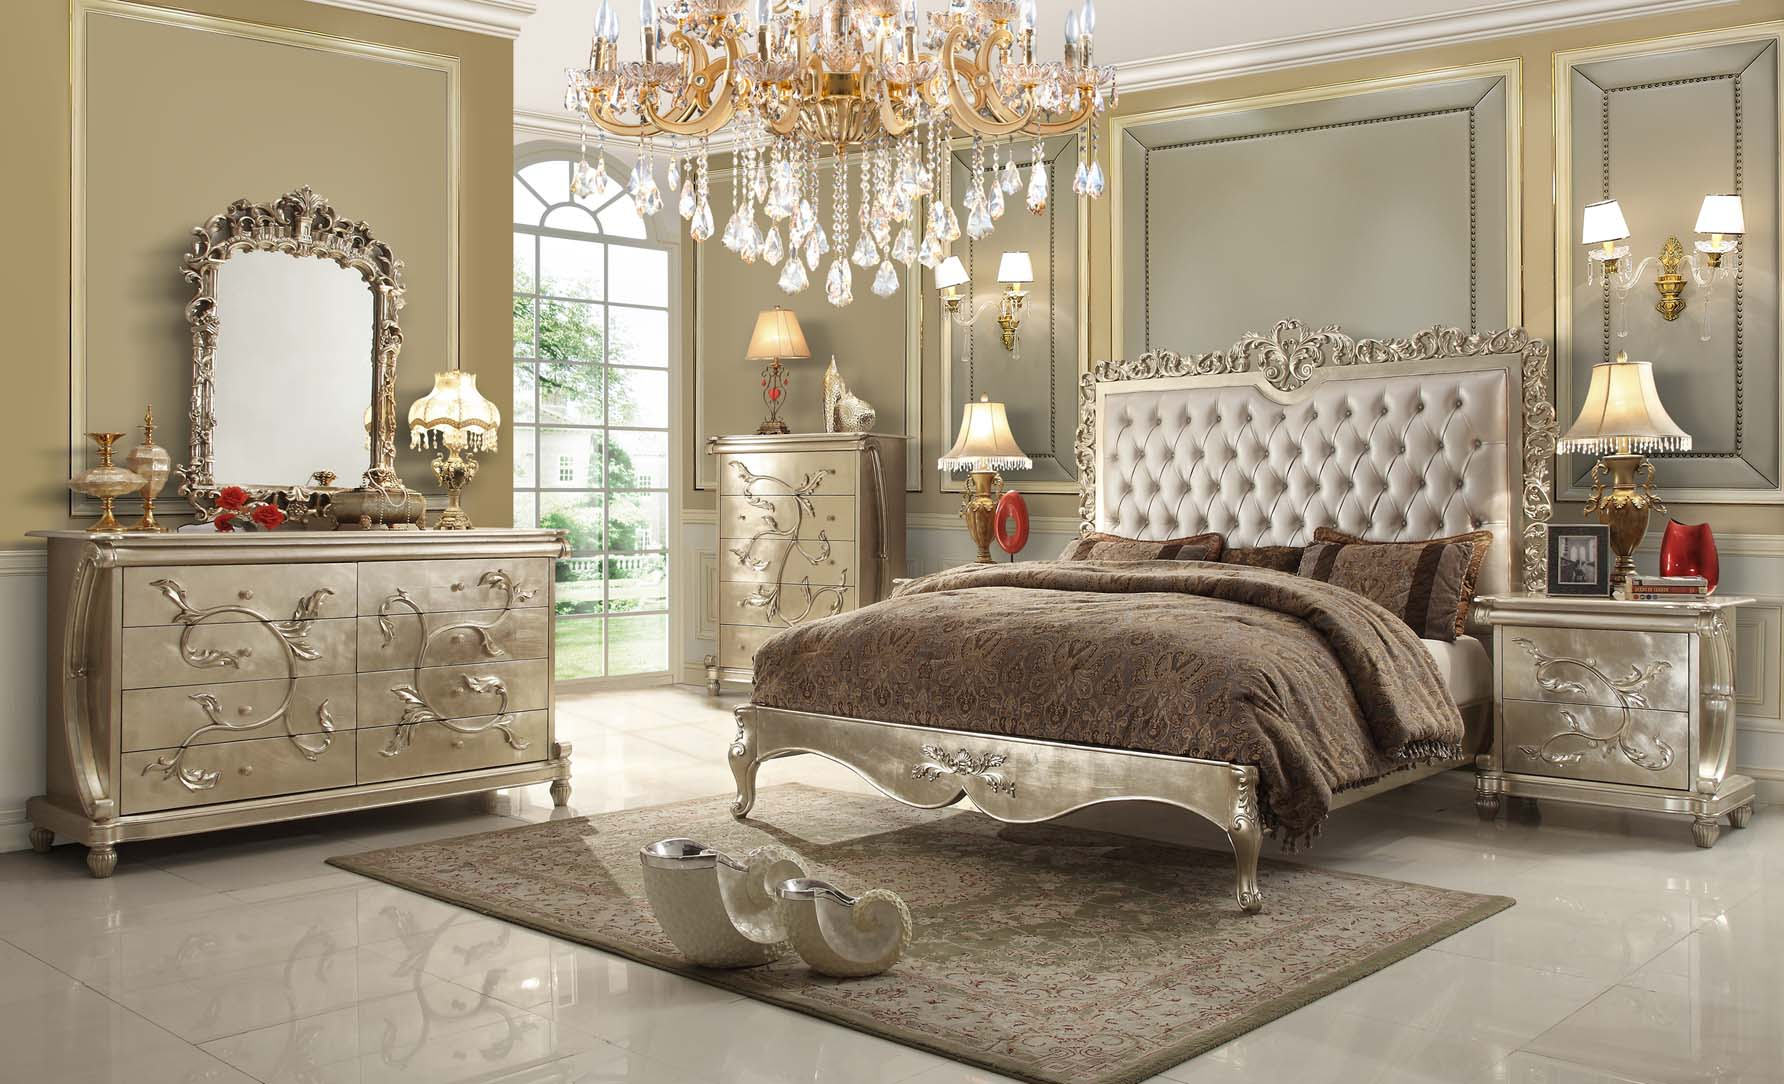 Pearl Victorian Design Bedroom Set From Homey Design